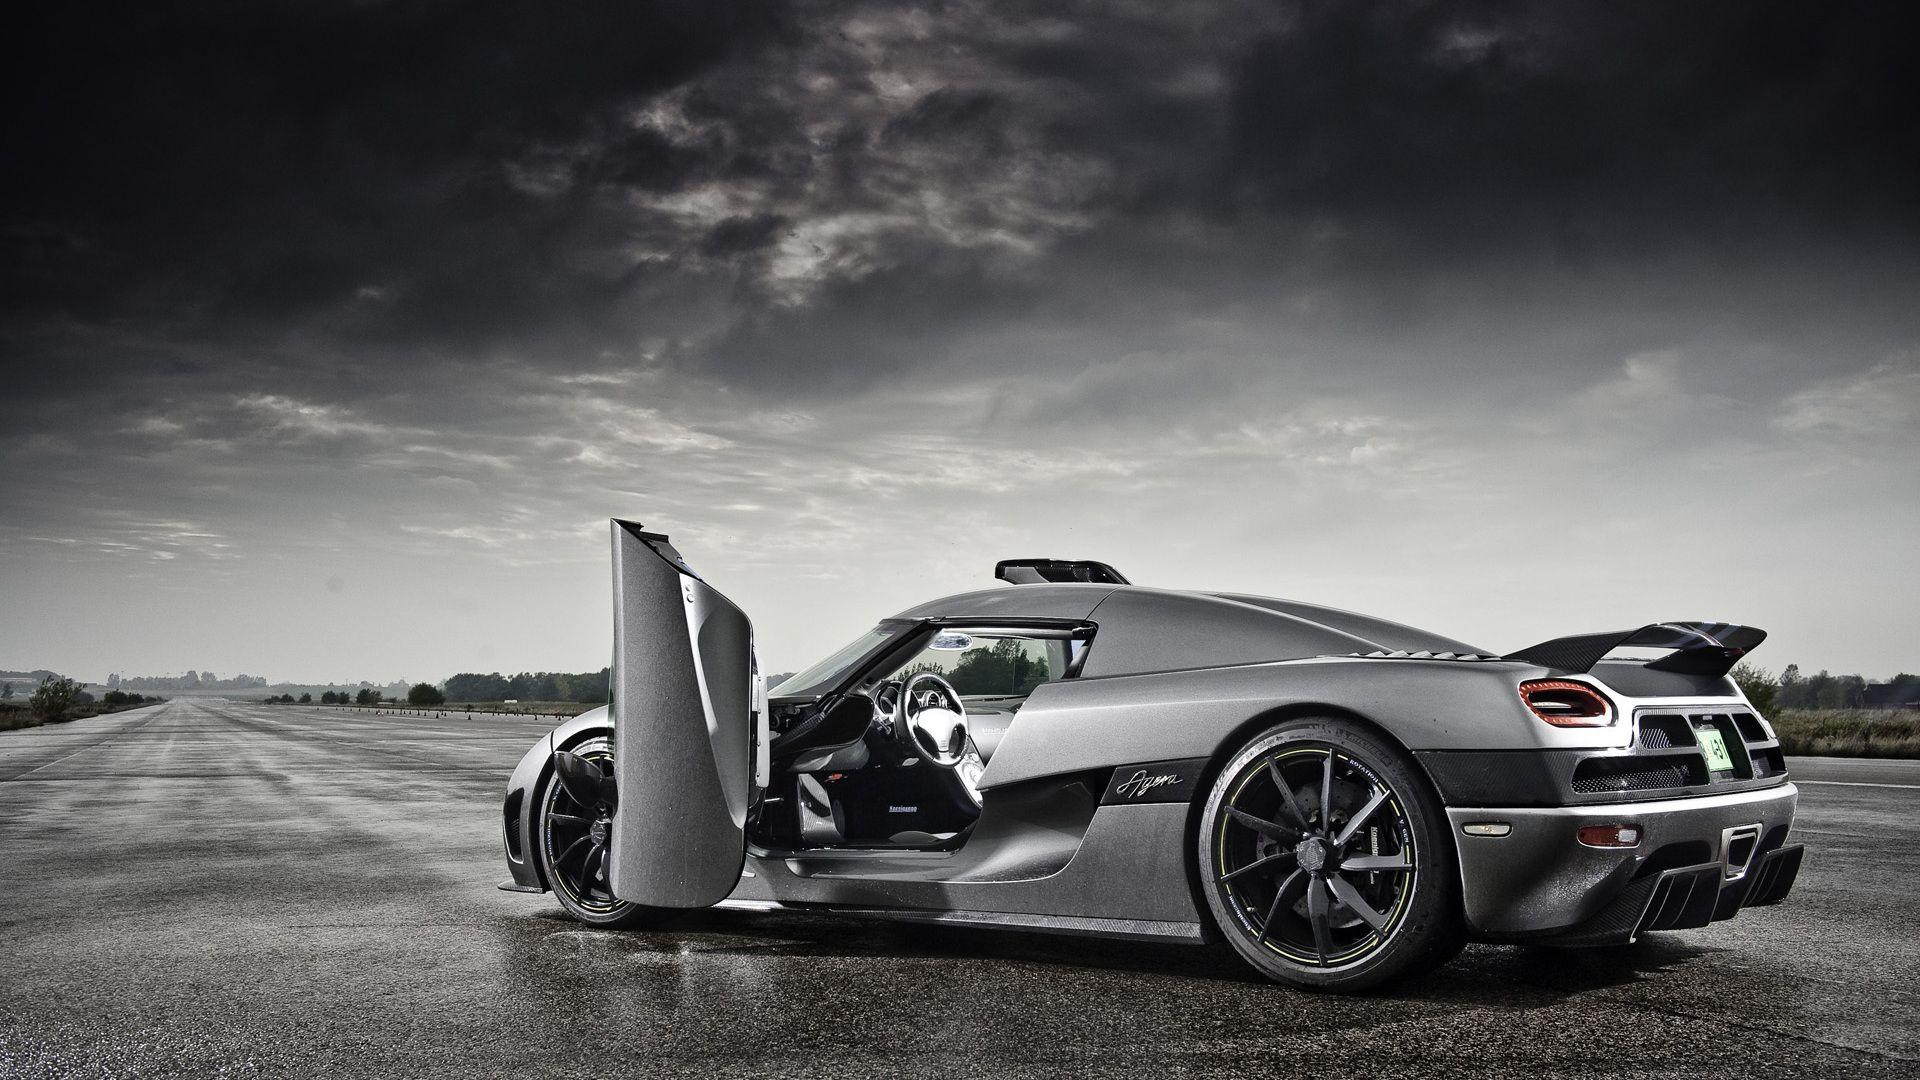 40 Koenigsegg Agera R Computer Wallpapers